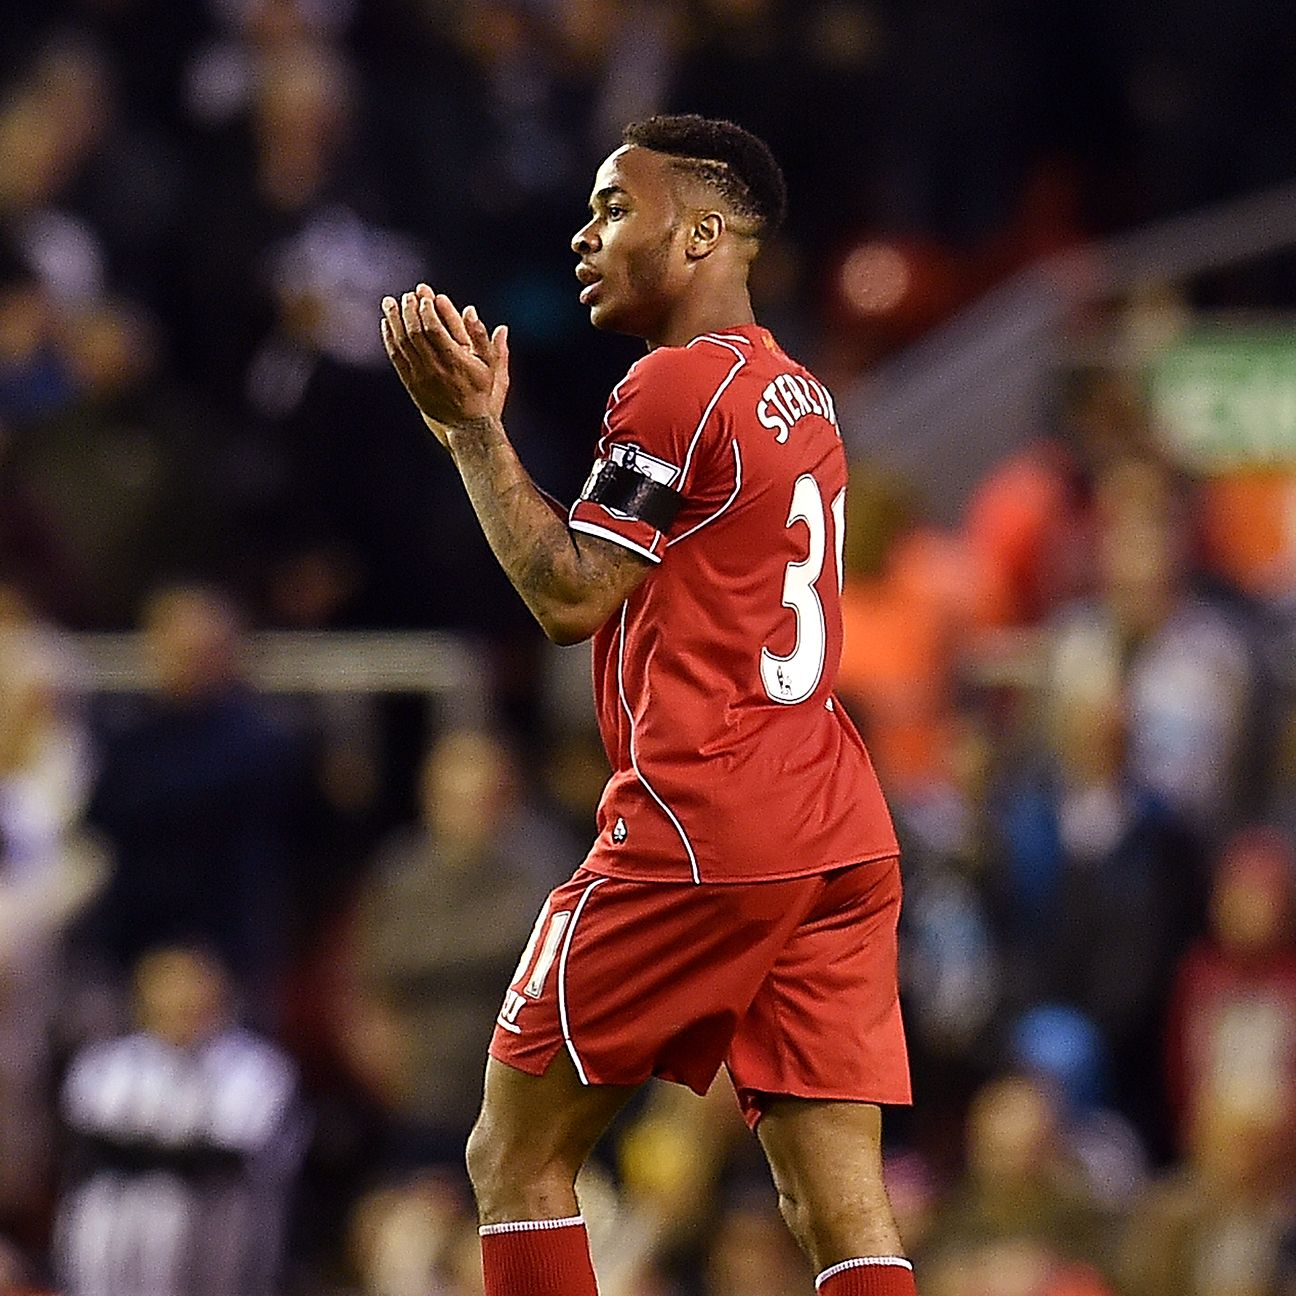 Sterling was warmly applauded upon leaving the pitch in Liverpool's home victory on Monday.